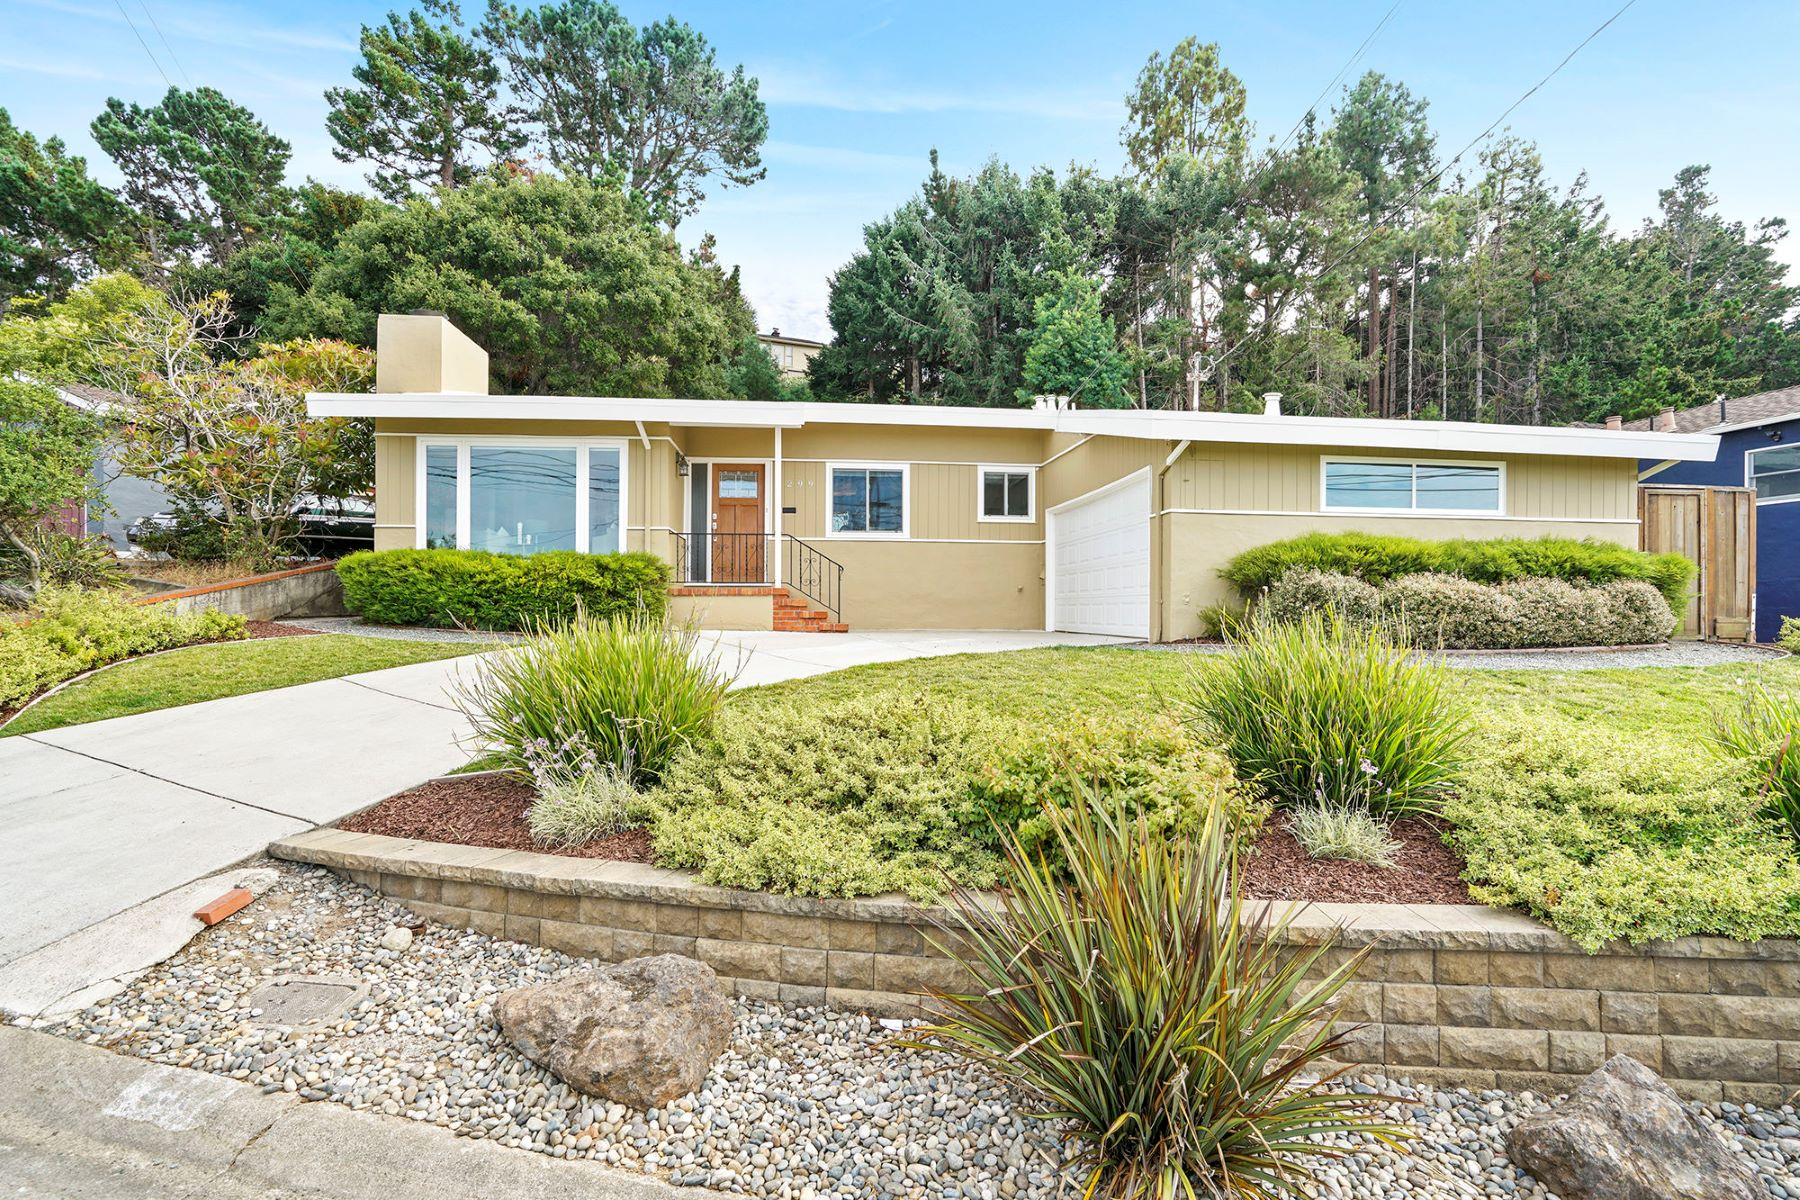 Single Family Homes for Active at Alluring Rancher with Commanding Views 299 41st Avenue San Mateo, California 94403 United States